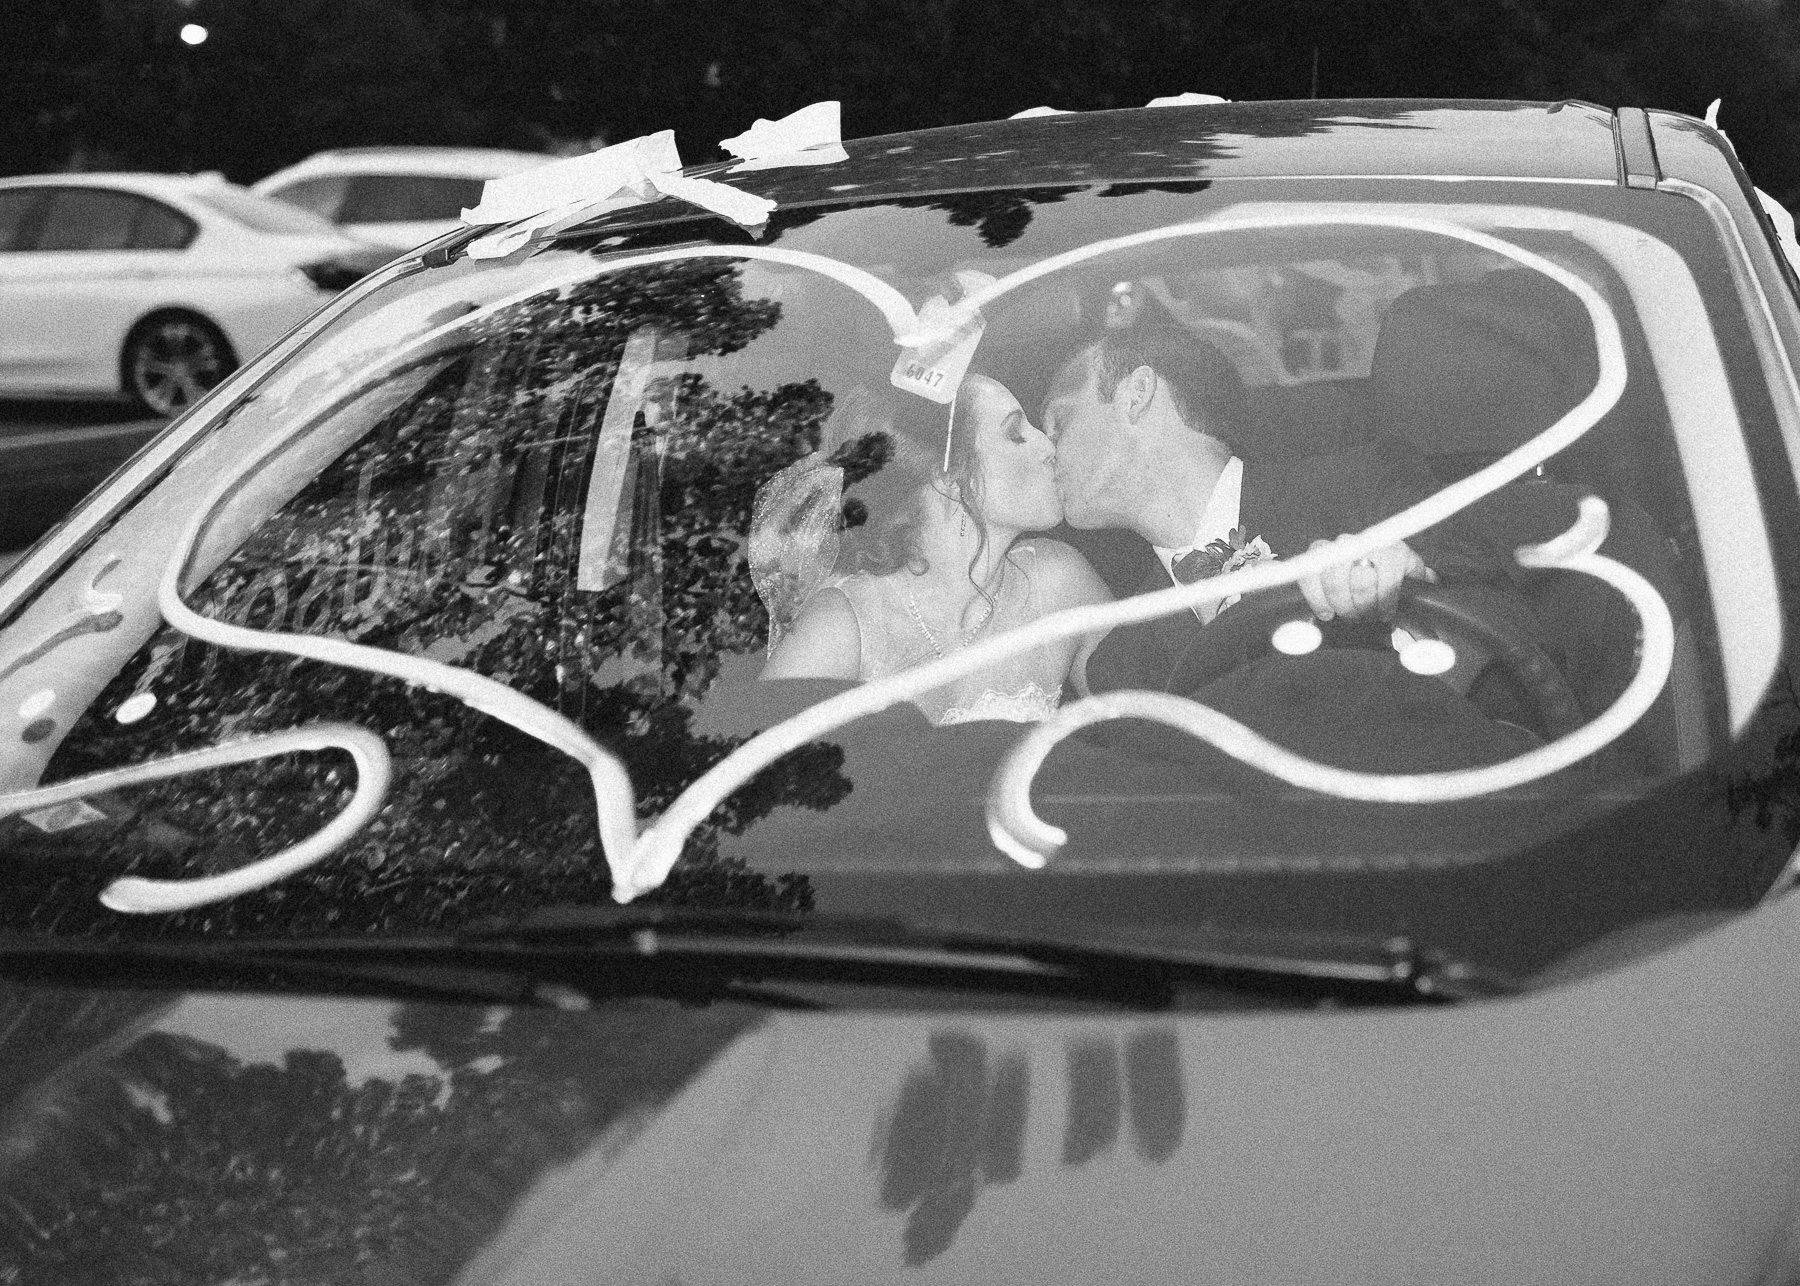 bride and groom in get-away car